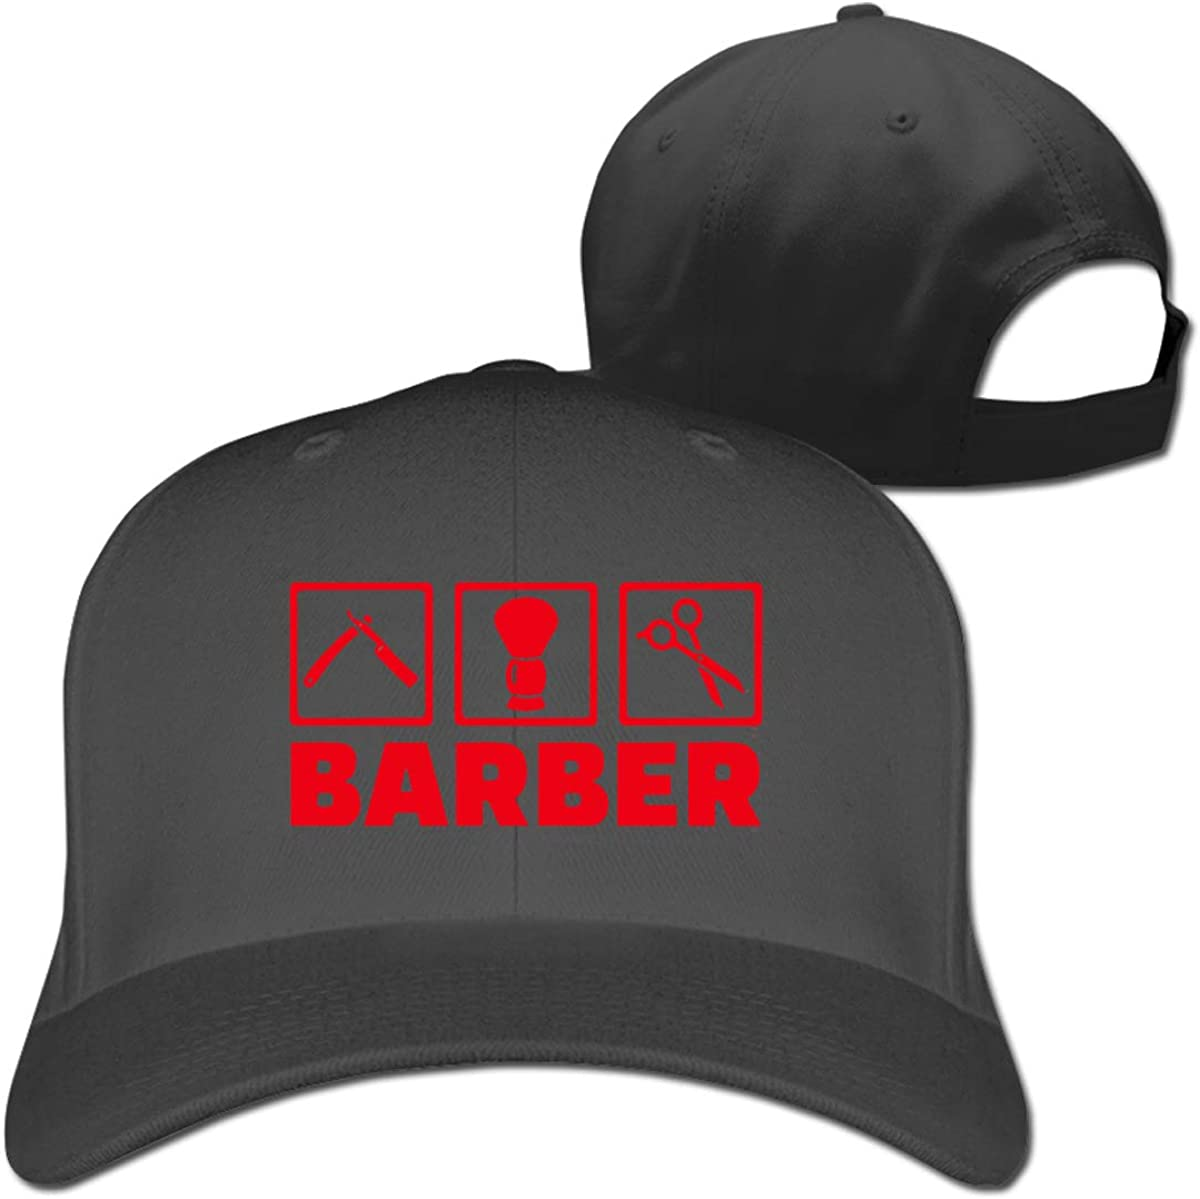 Barber Tool Fashion Adjustable Cotton Baseball Caps Trucker Driver Hat Outdoor Cap Black